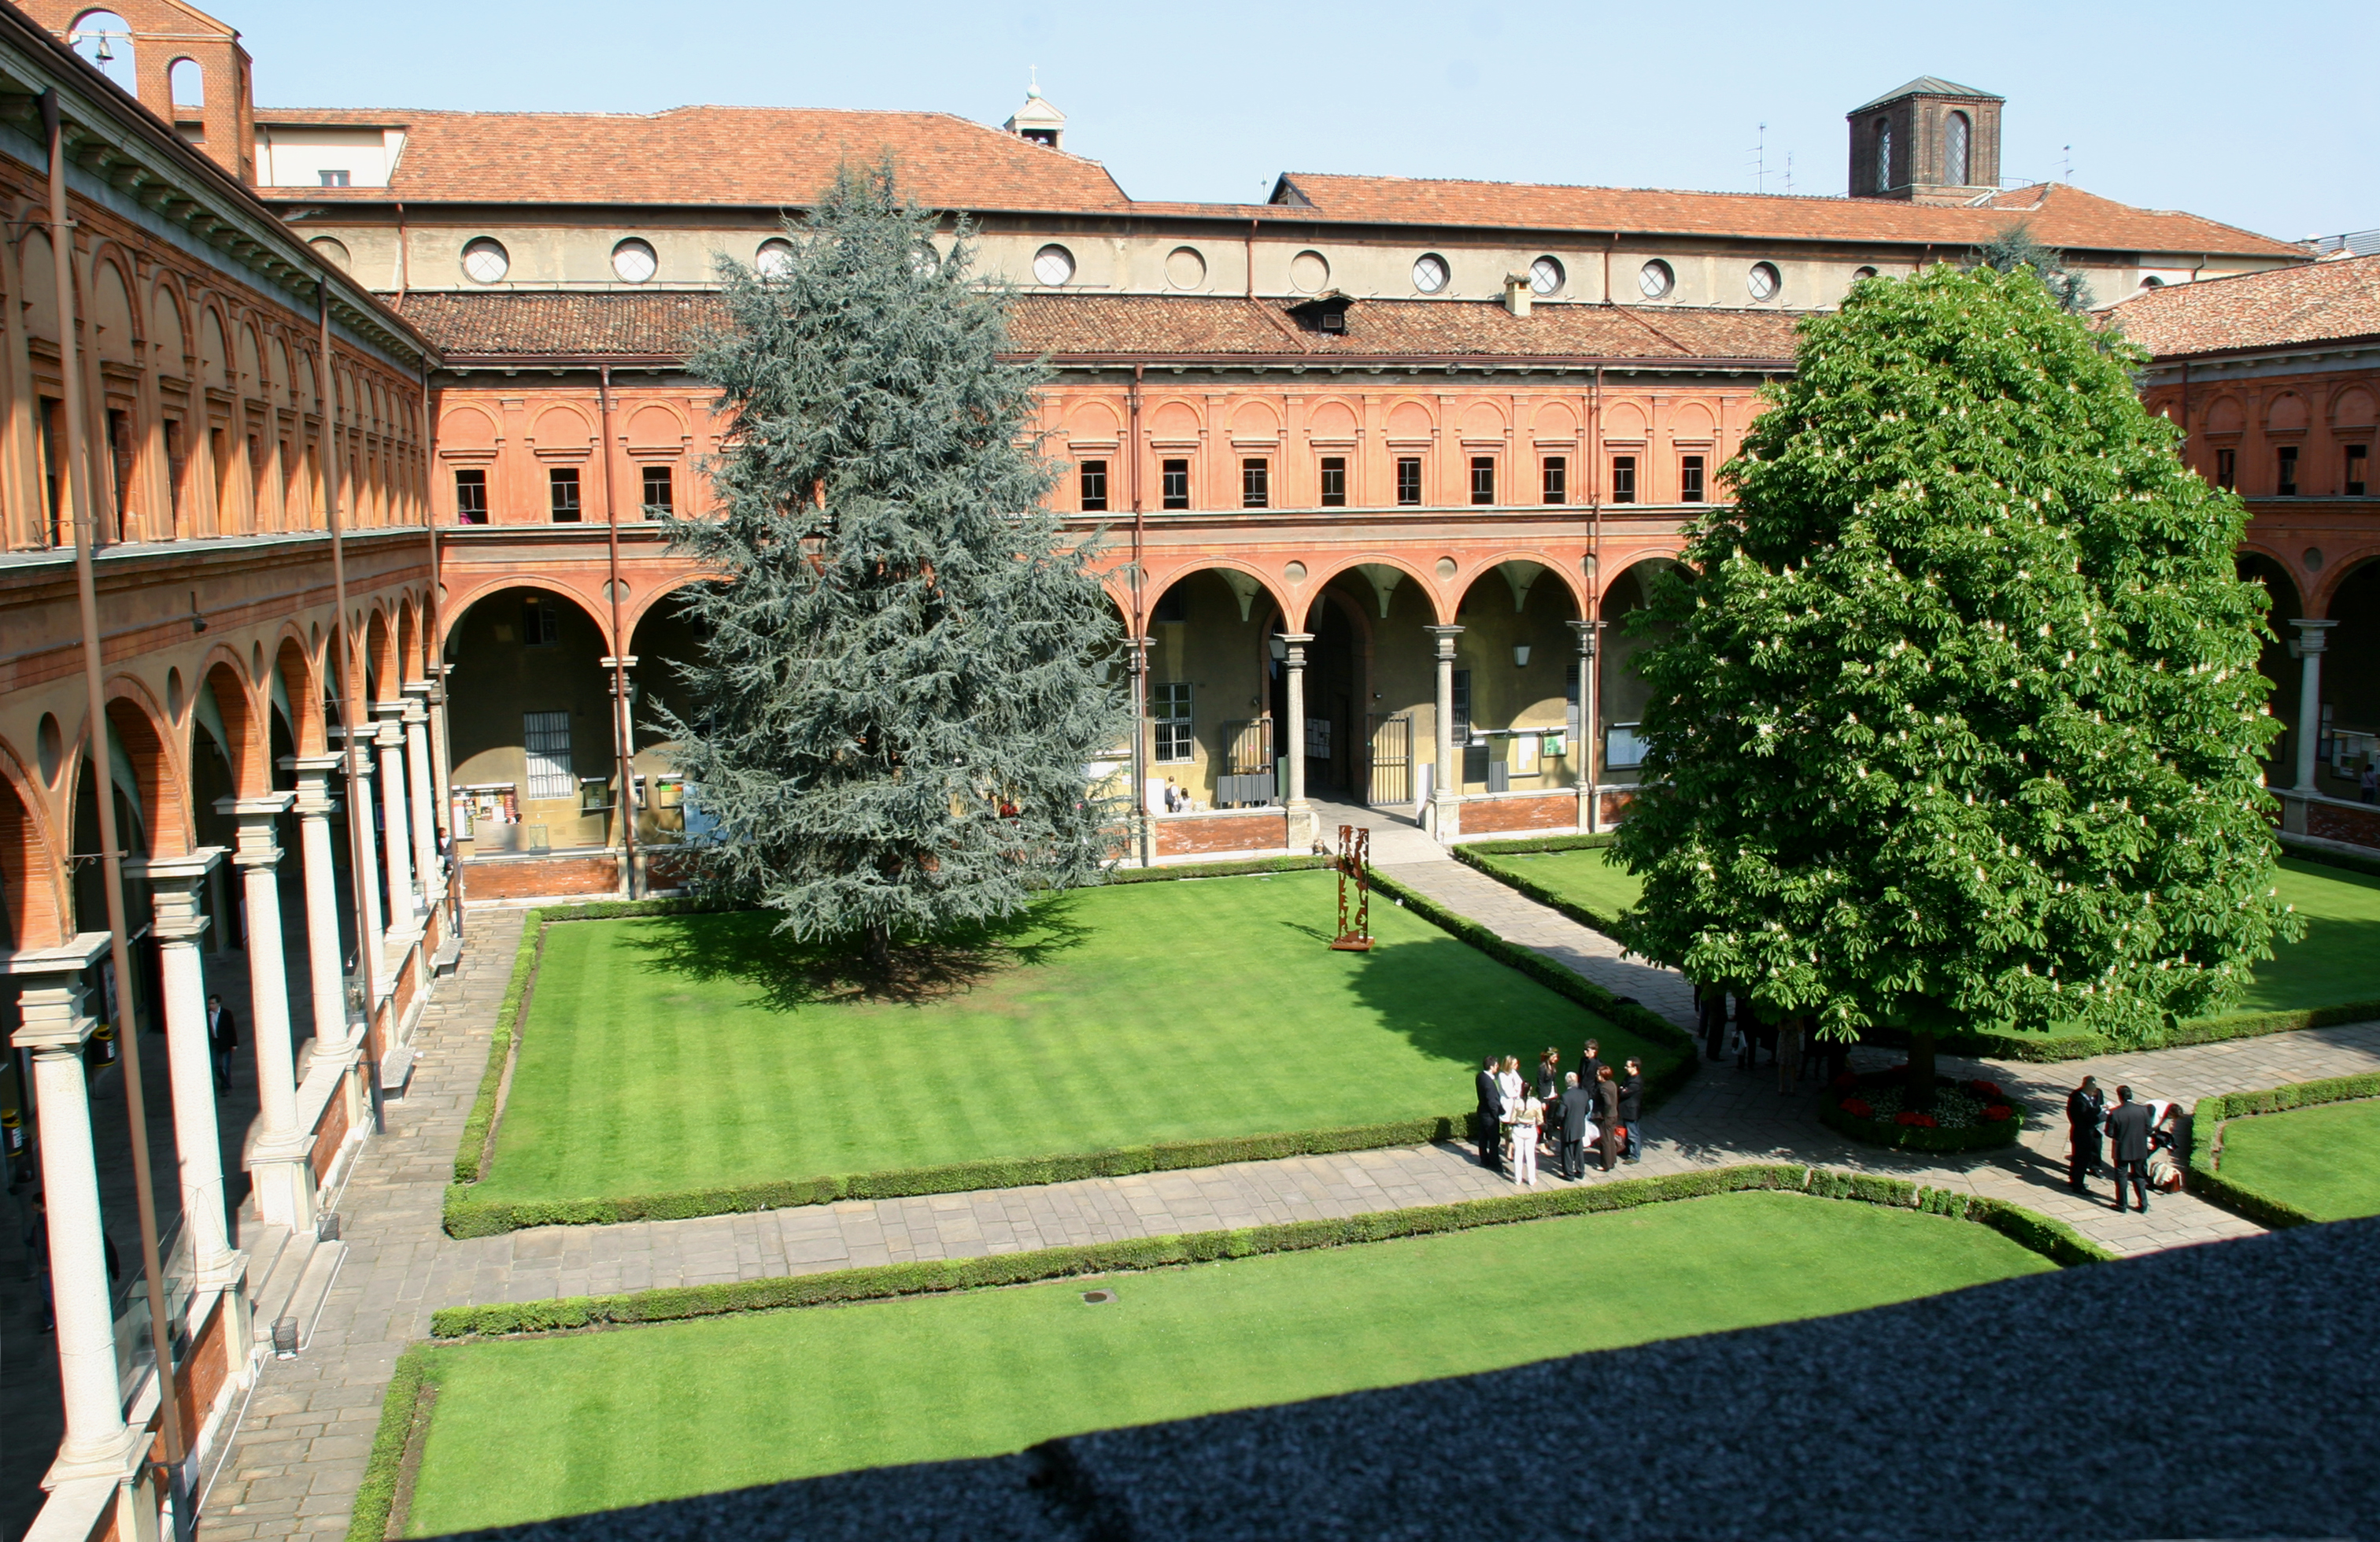 Competition at Universita Cattolica del Sacro Cuore 2019/2020